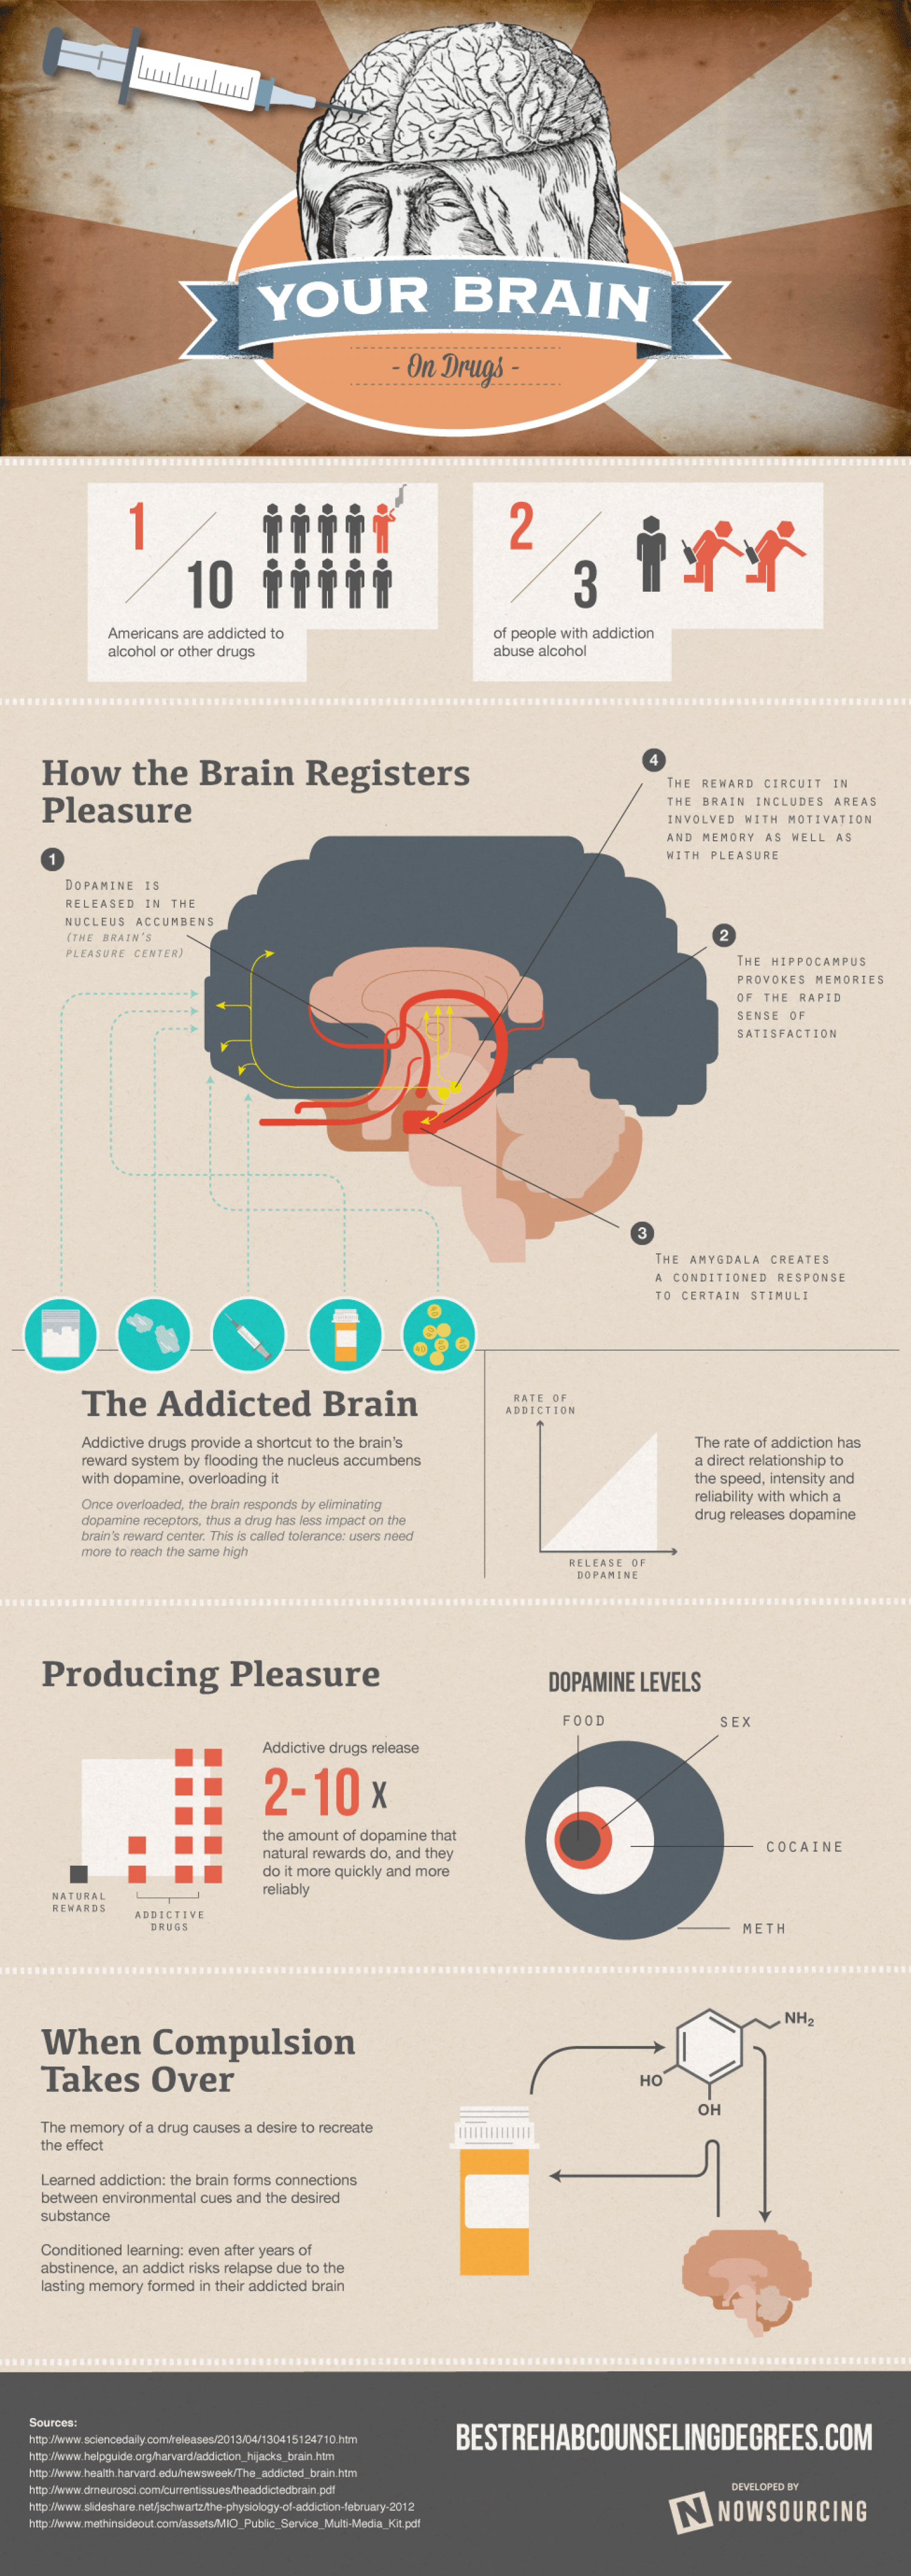 Your Brain on Drugs Infographic